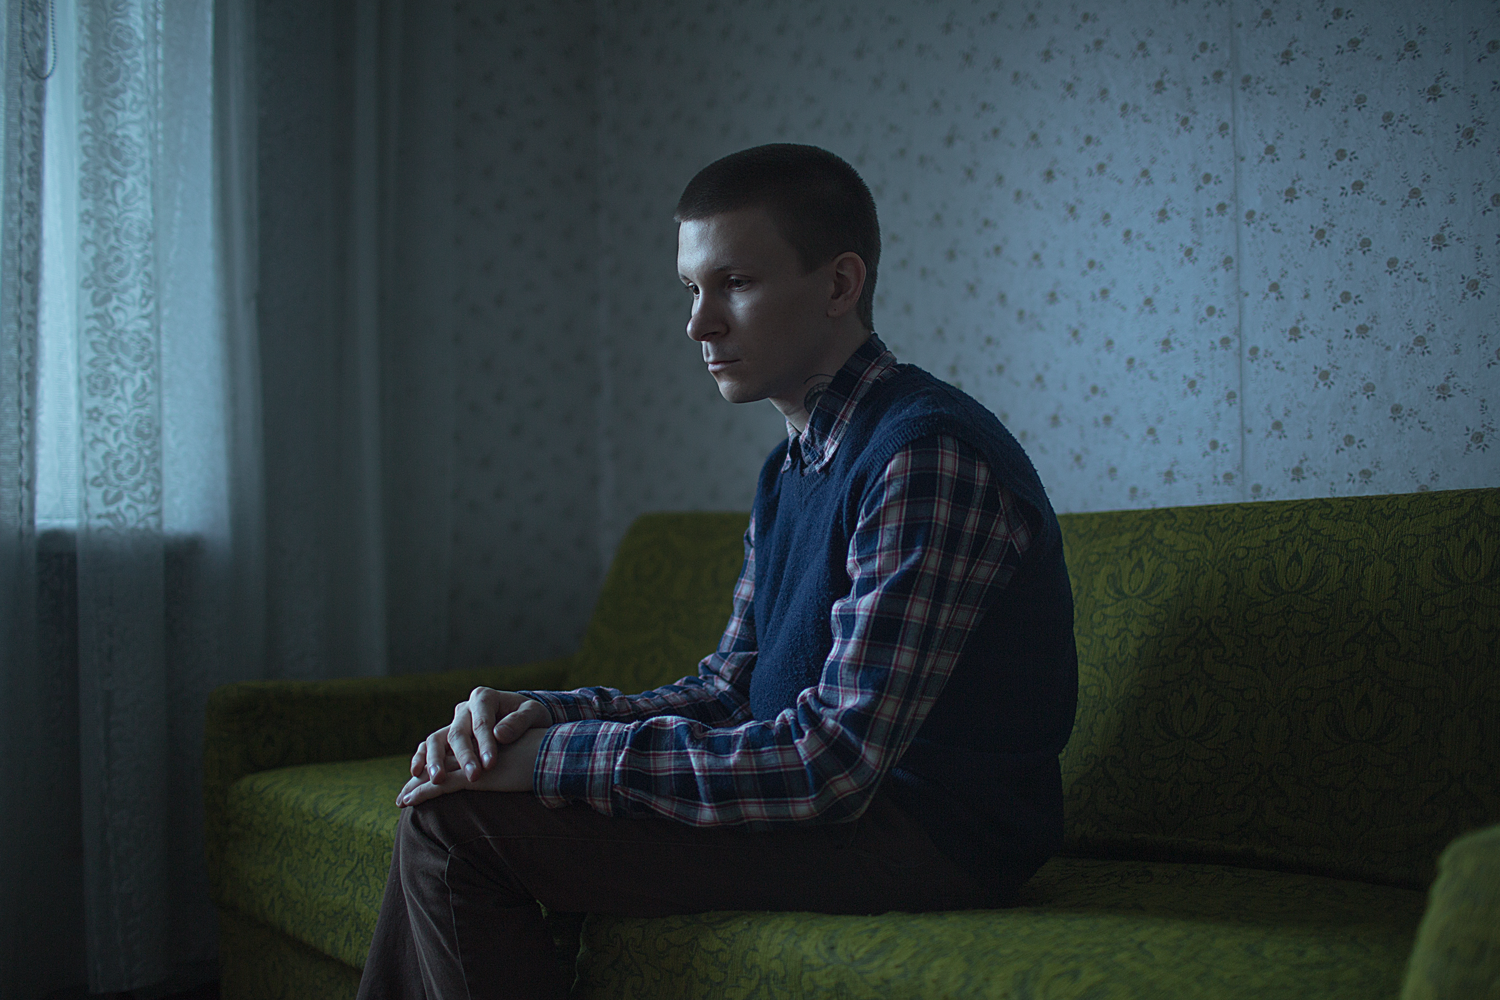 """Anton, 20 years old, poses for a portrait at his apartment in St. Petersburg, Russia.     Anton says: """"Heterosexuality is the right thing, everything else is not. I hope I'm not gay forever."""""""